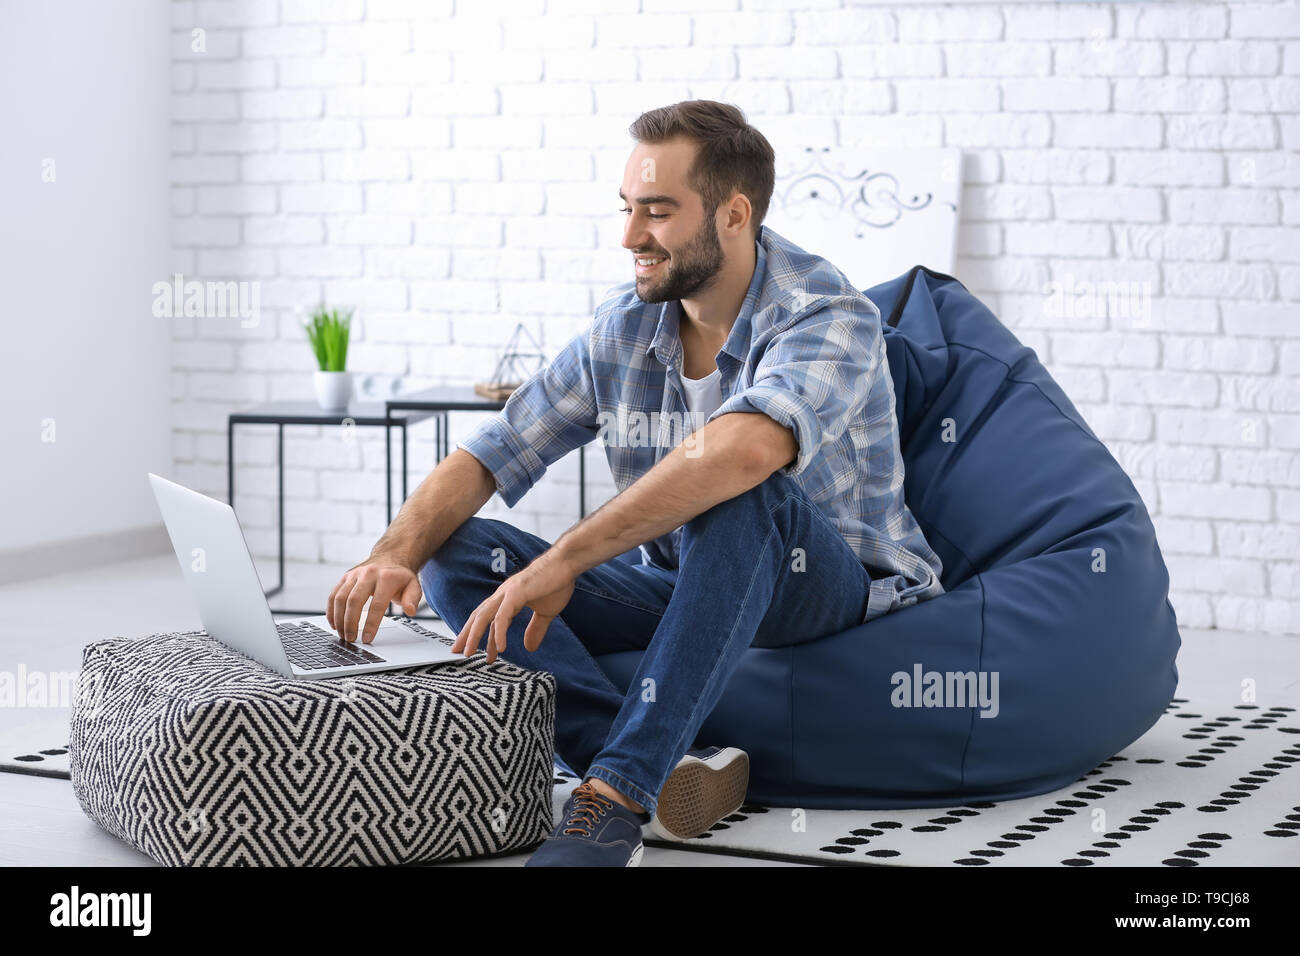 Young man with laptop sitting on beanbag chair at home - Stock Image